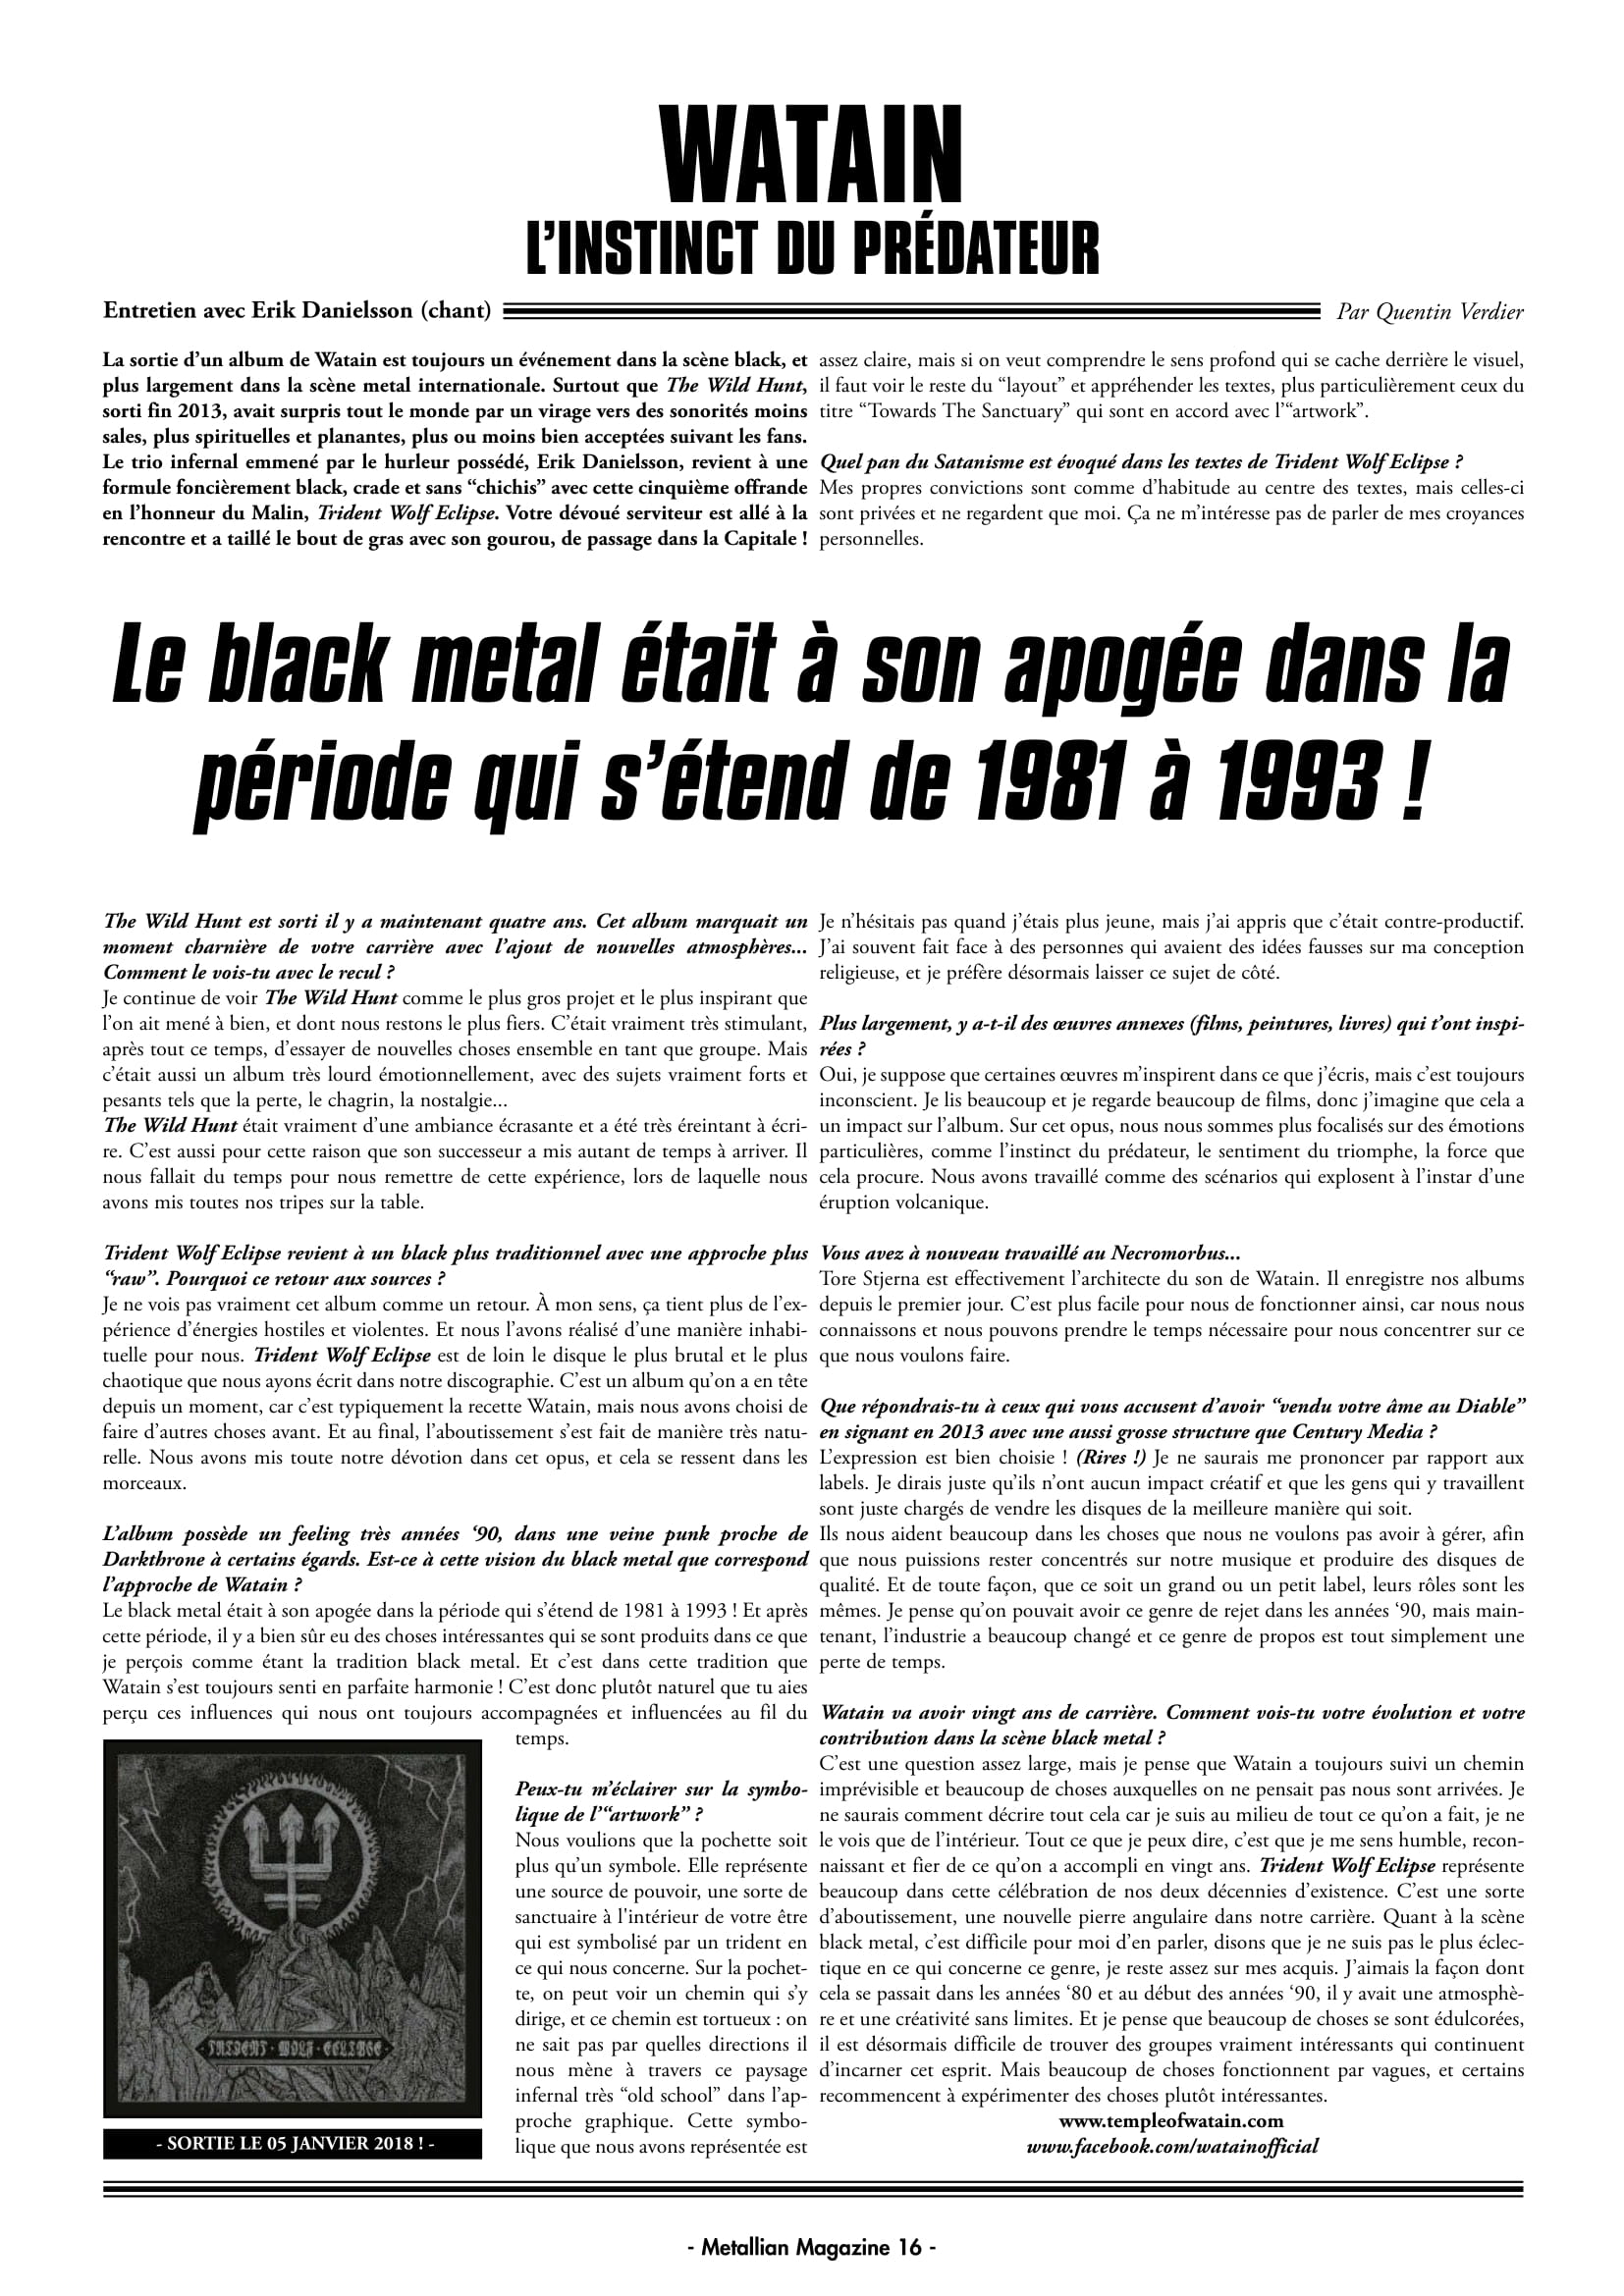 WATAIN L'instinct du prédateur (Interview METALLIAN Nov/Dec 2017) Archive à lire Metall20